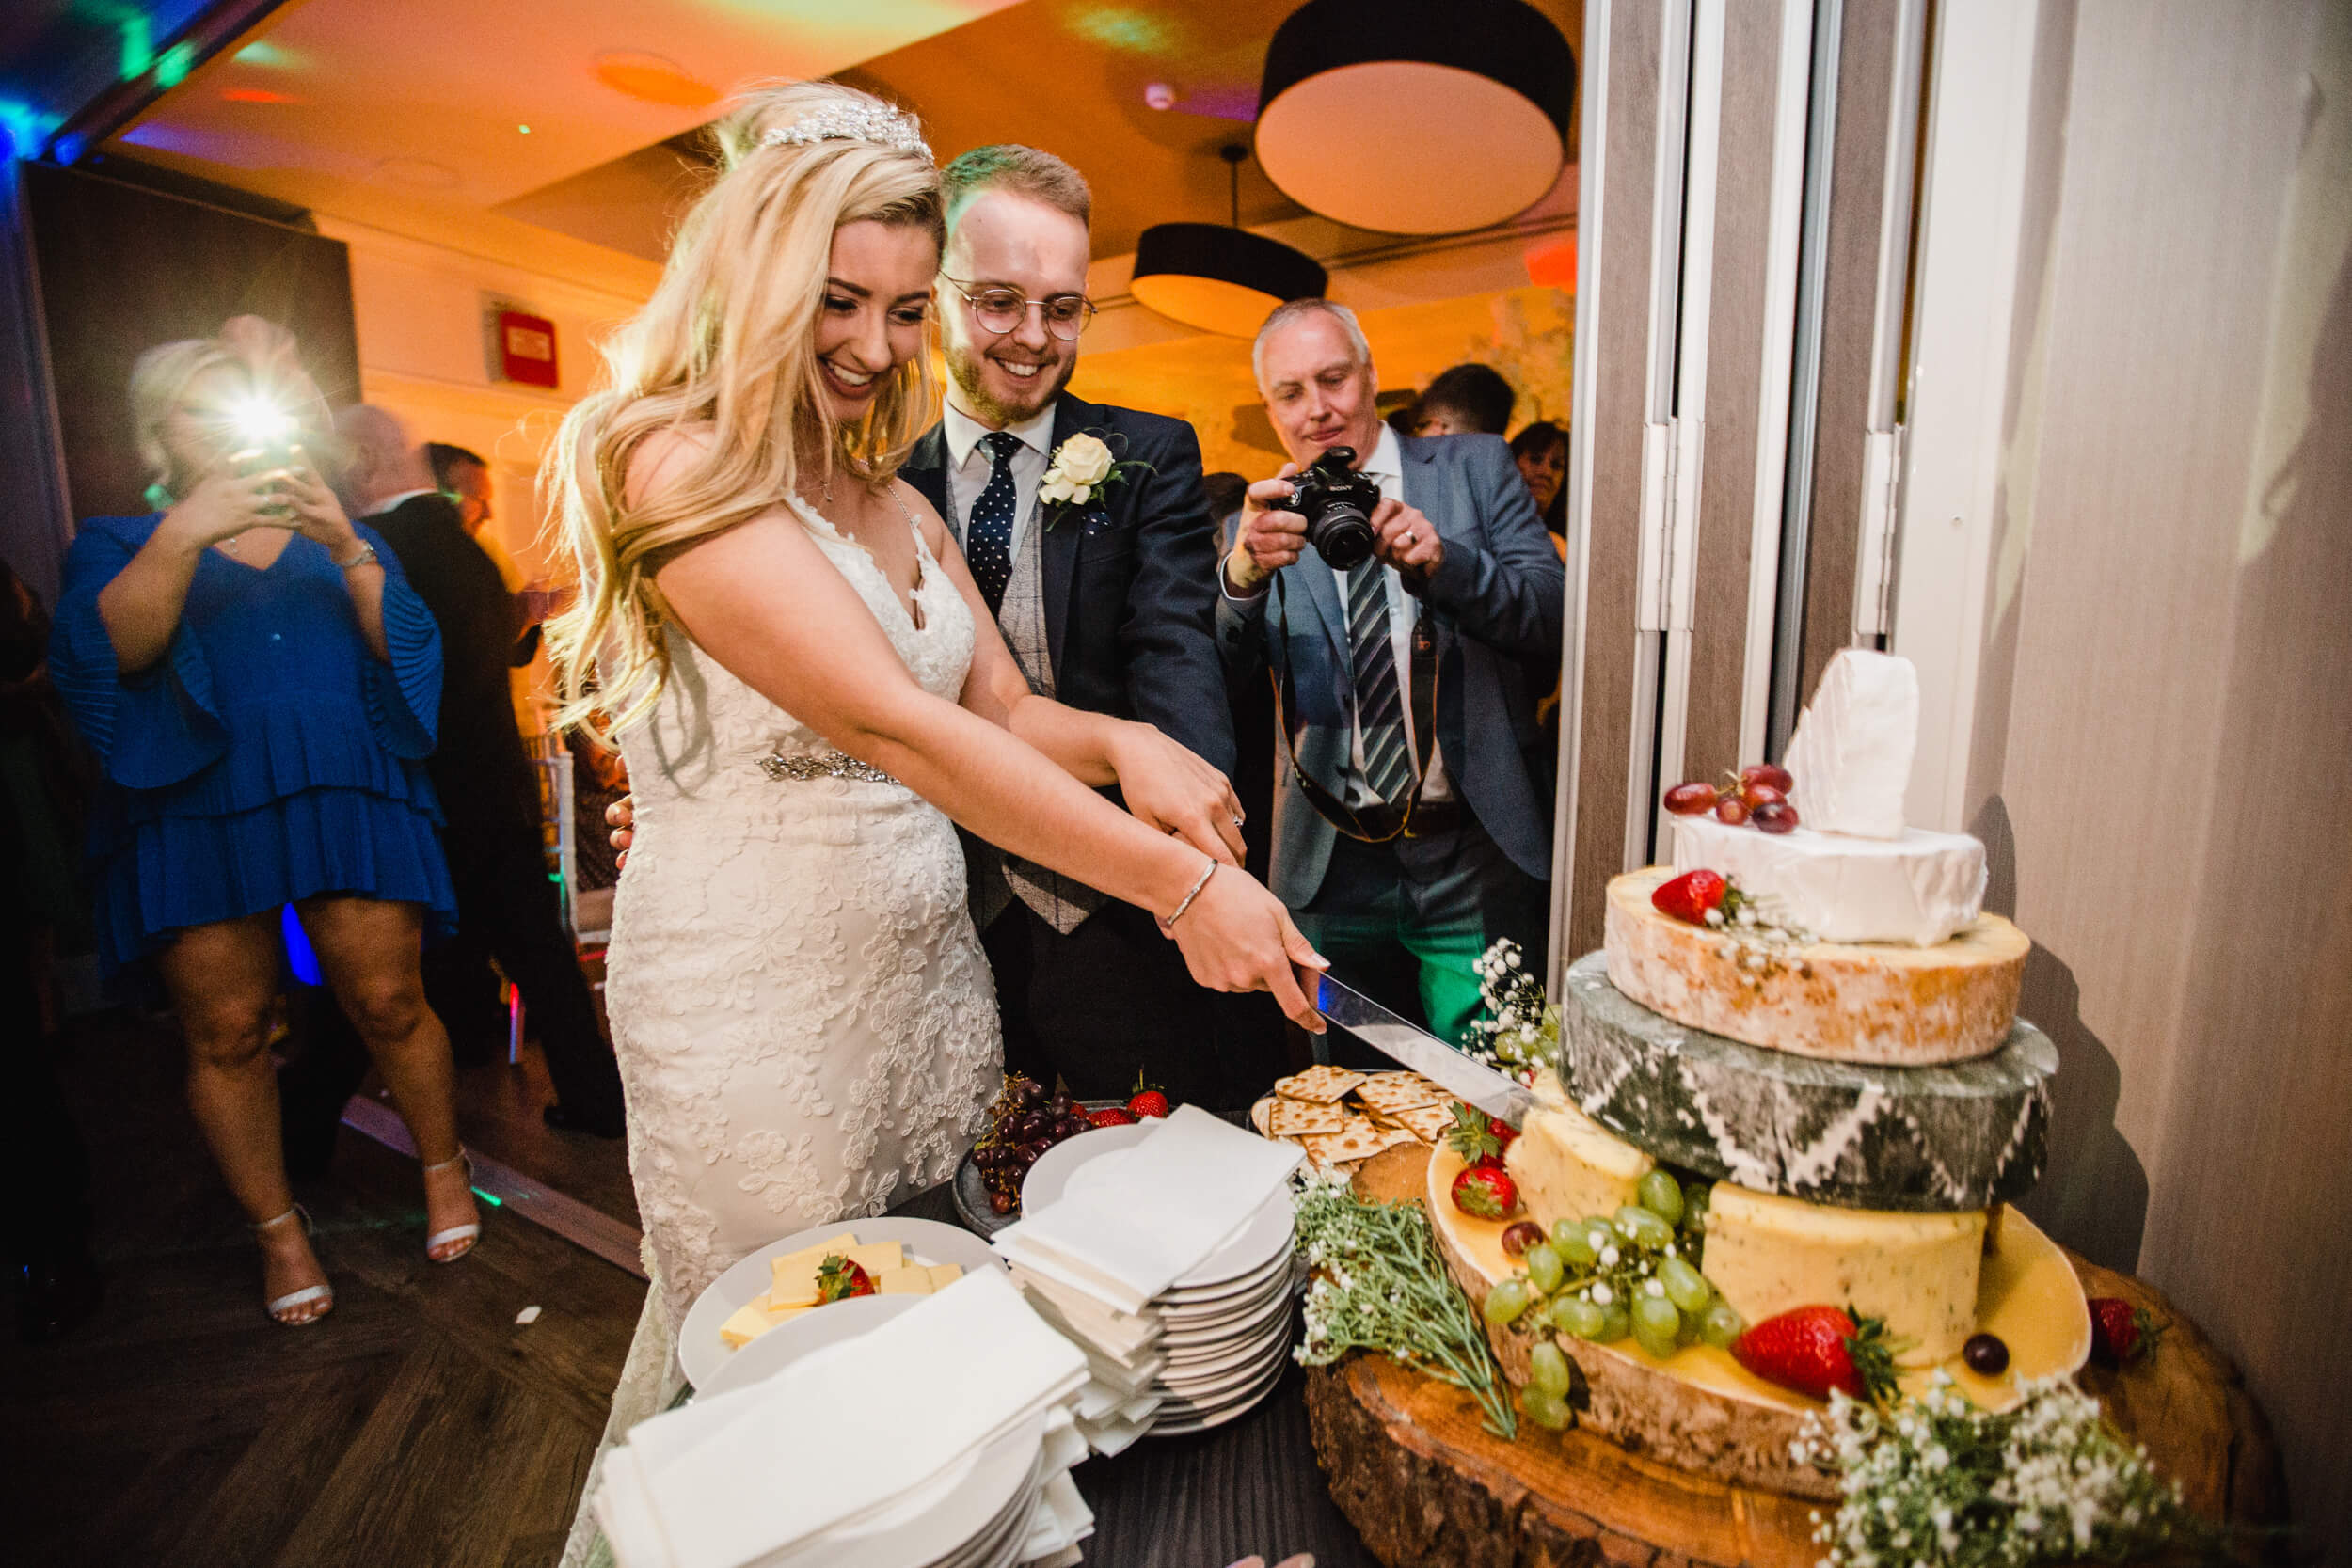 bride and groom cut wedding cake with family and friends